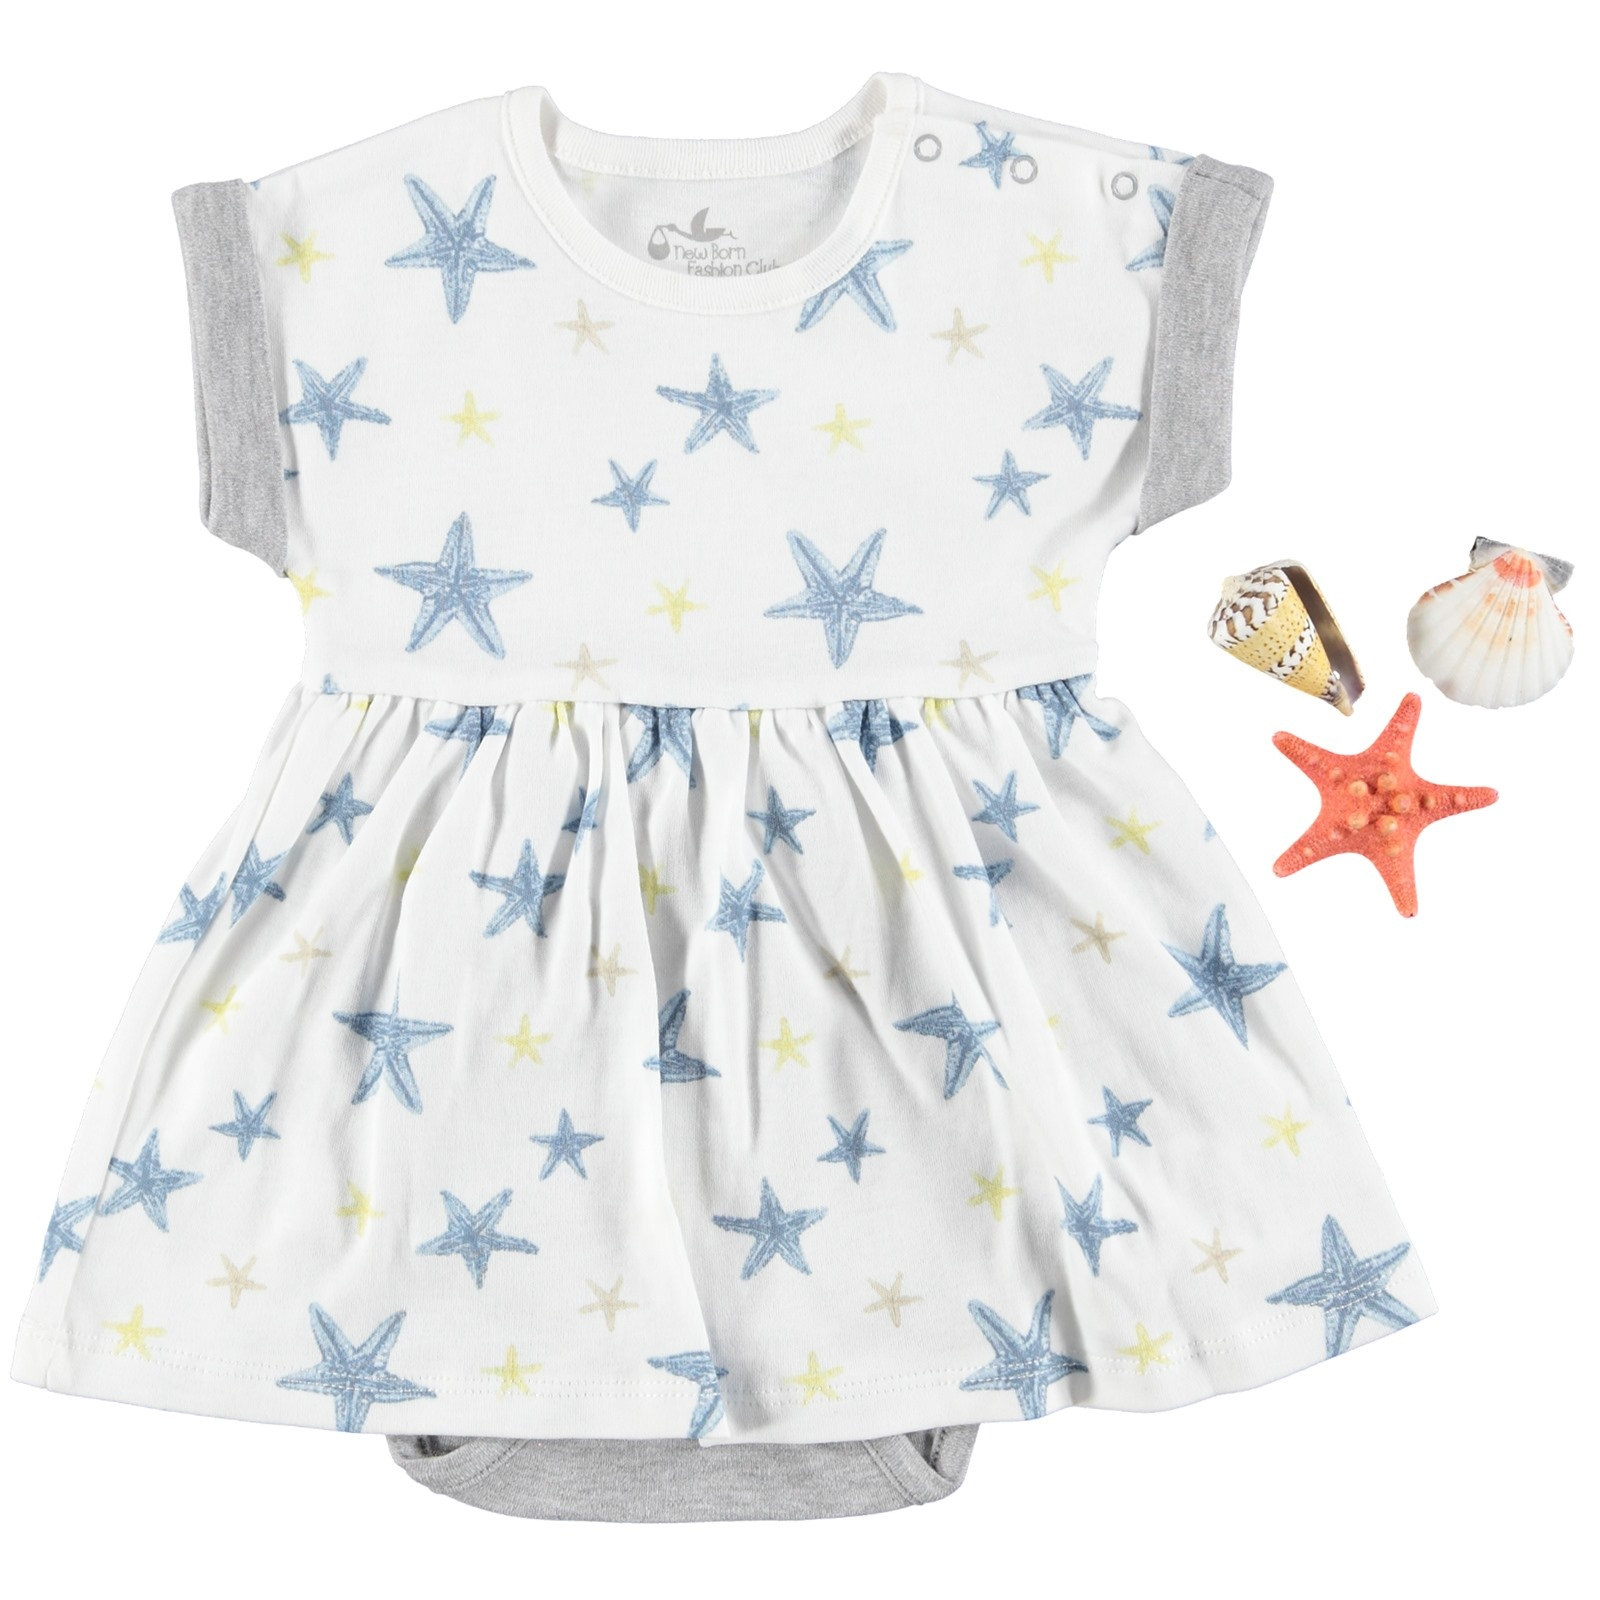 Ebebek Newborn Fashion Club StarFish Baby Girl Dress Bodysuit